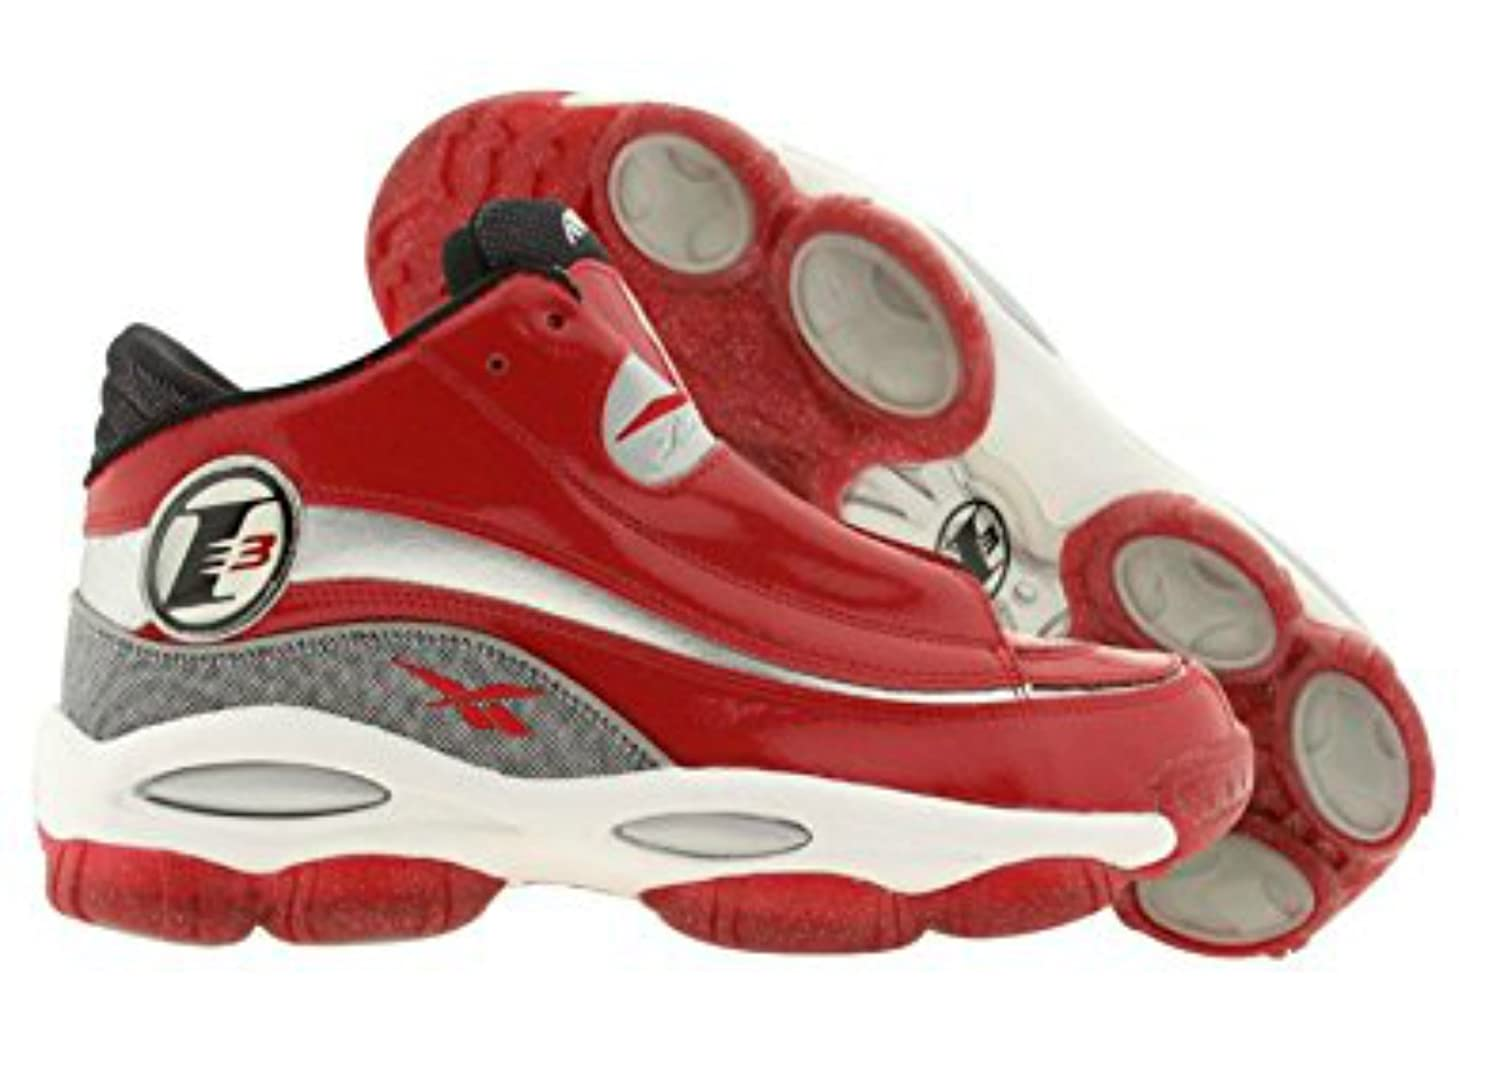 Reebok Mens Answer DMX 10 Allen Iverson Basketball Shoes Red Silver White Black